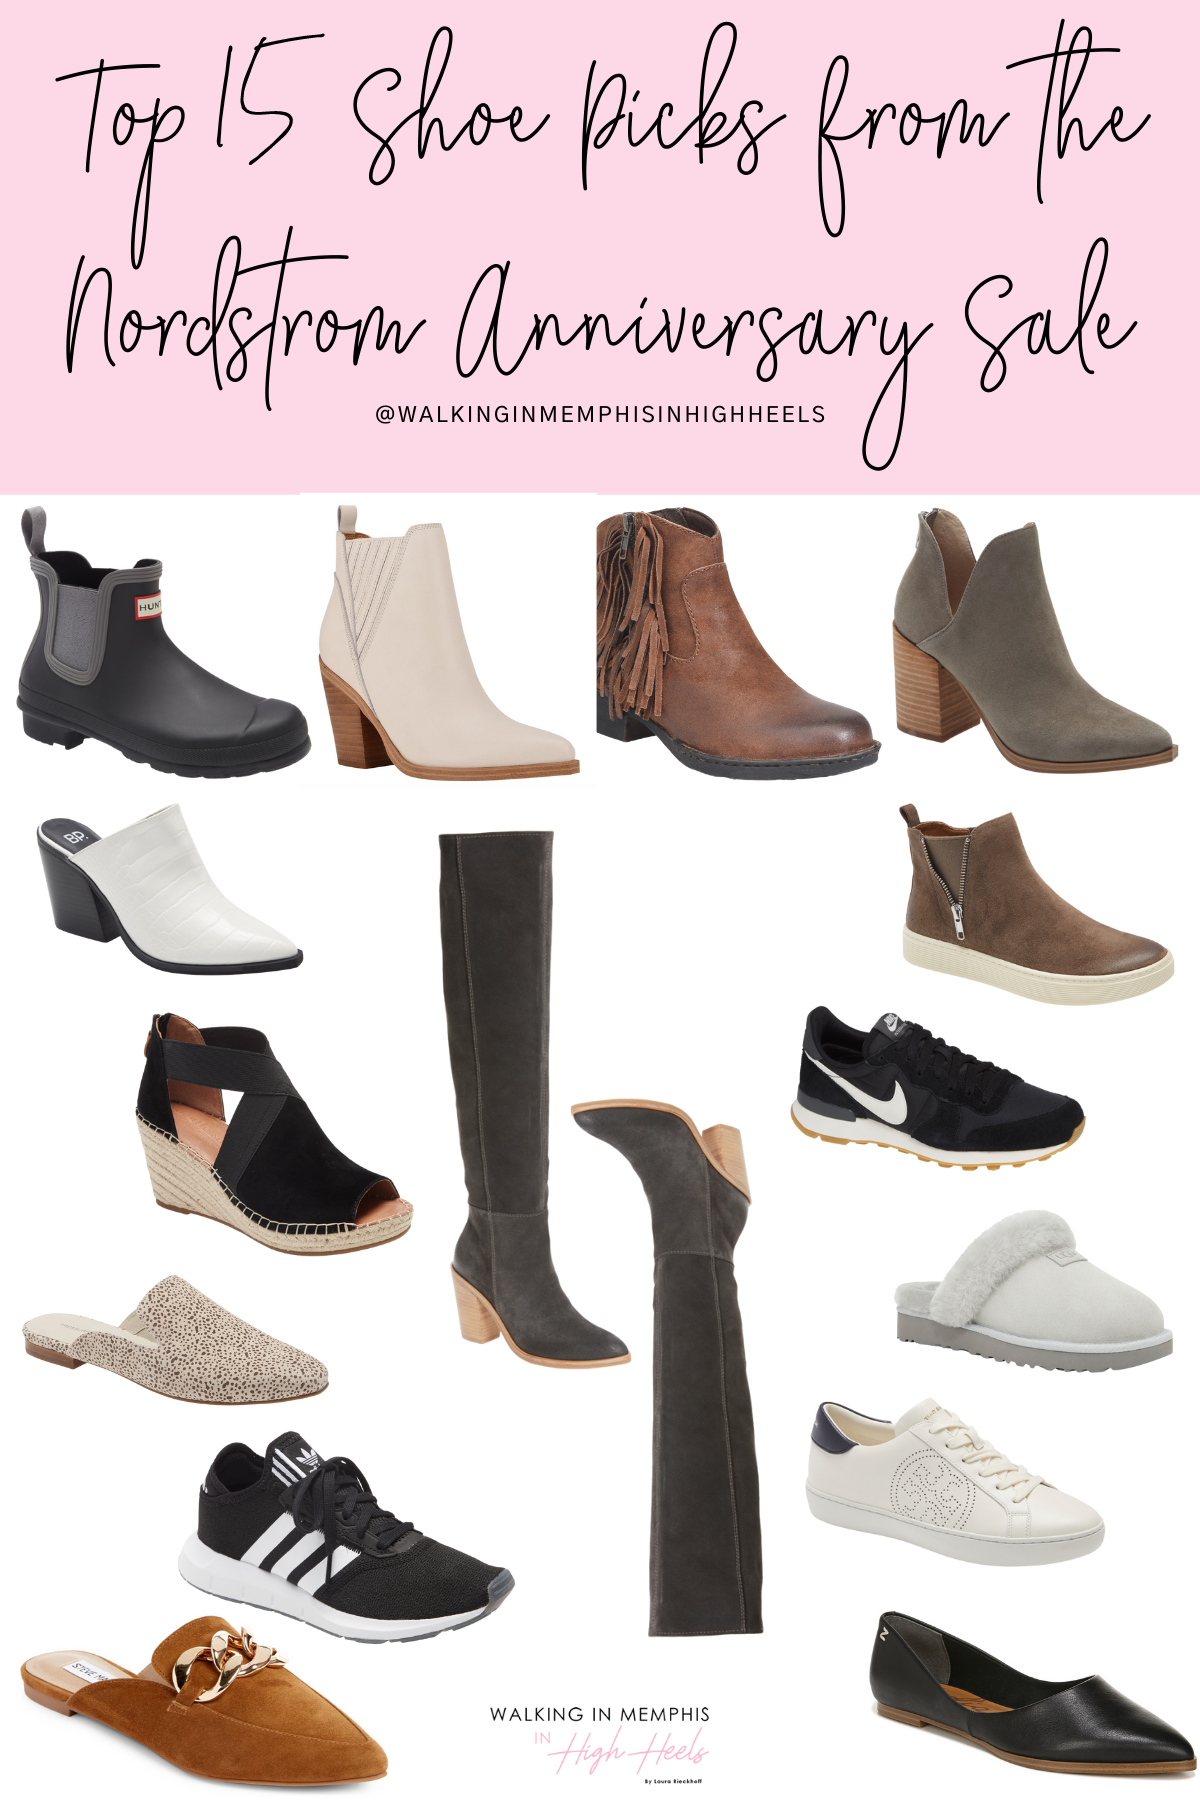 Nordstrom Anniversary Sale 2021: Top 15 Shoe Picks for Women featured by top Memphis fashion blogger, Walking in Memphis in High Heels.